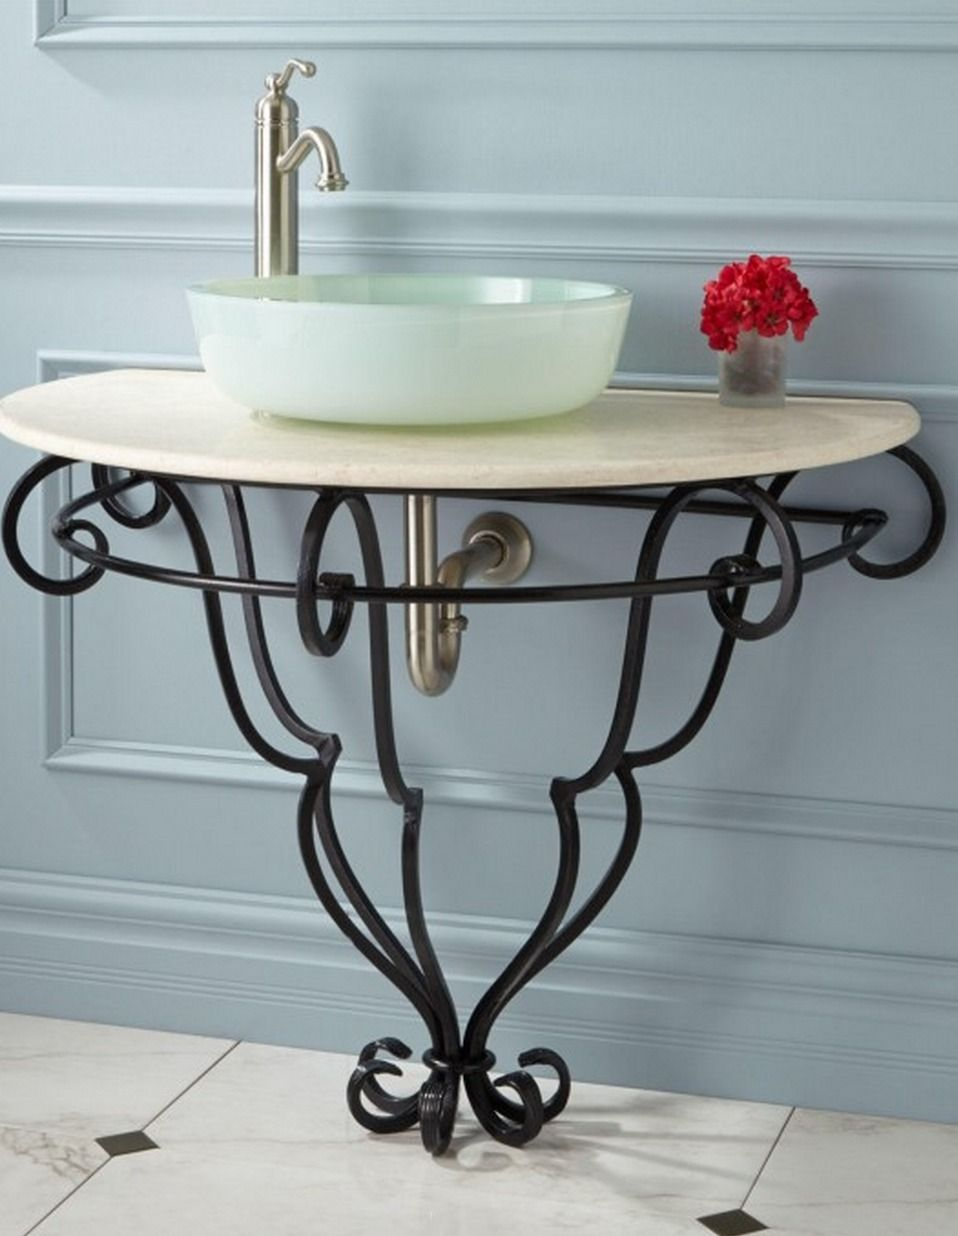 Michel Wall Mount Wrought Iron Vessel Sink Stand With Stone Top Bathroom Wrought Iron Wrought Iron Decor Wrought Iron Furniture